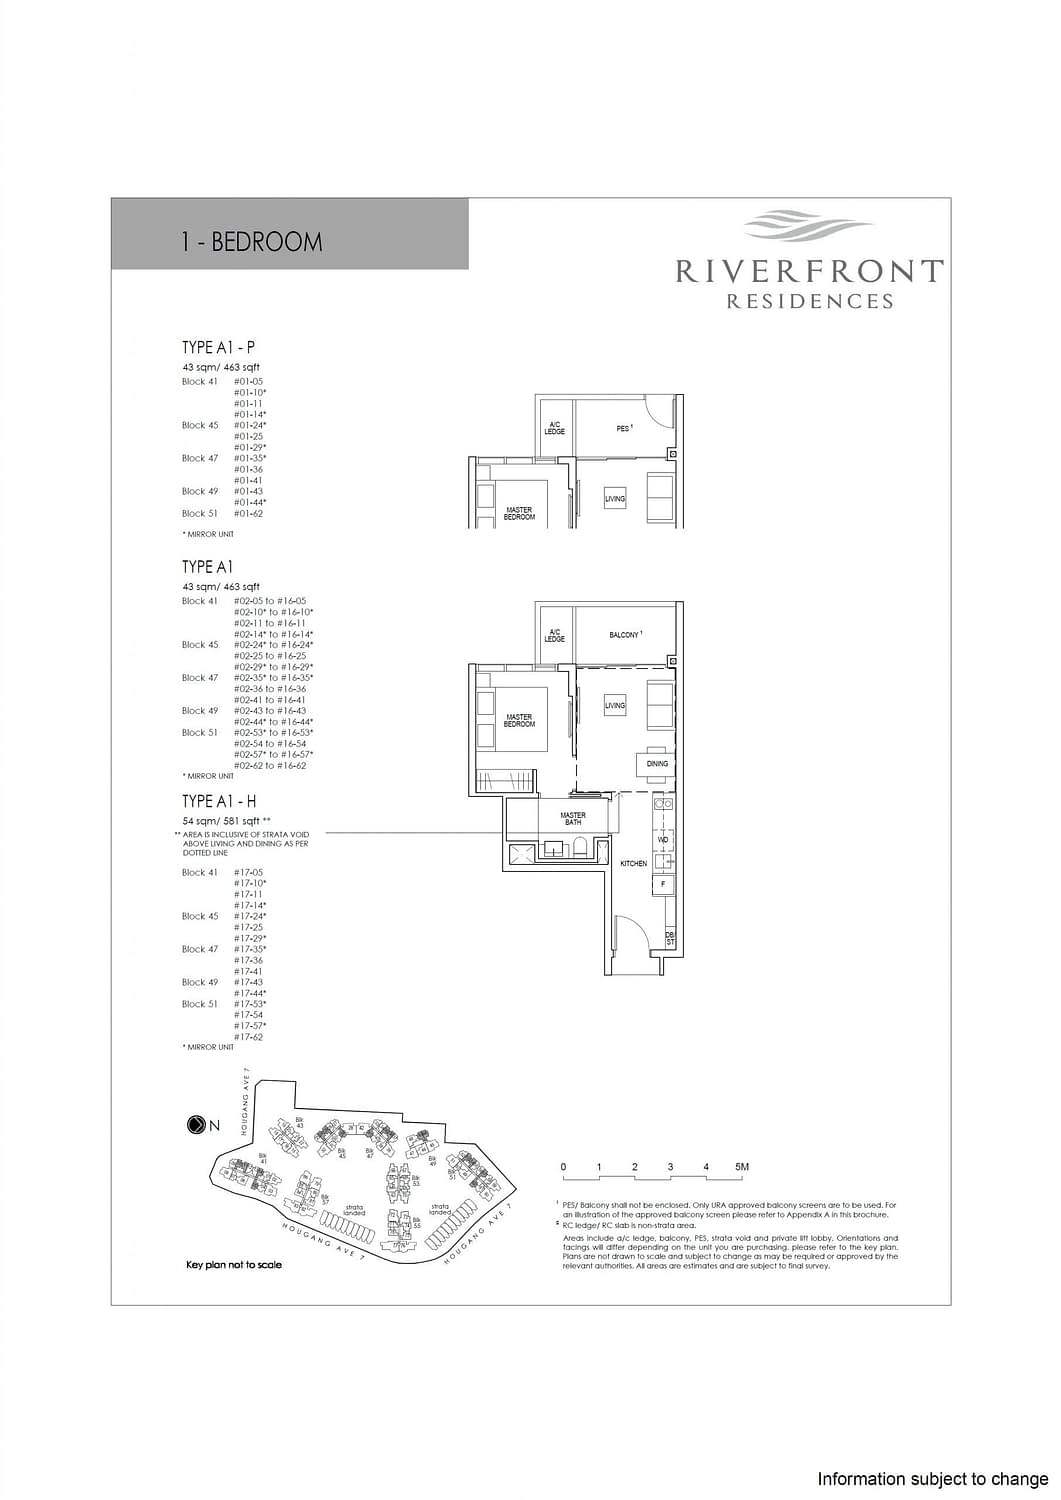 Riverfront Residences Riverfront Residences Floorplan A1 scaled